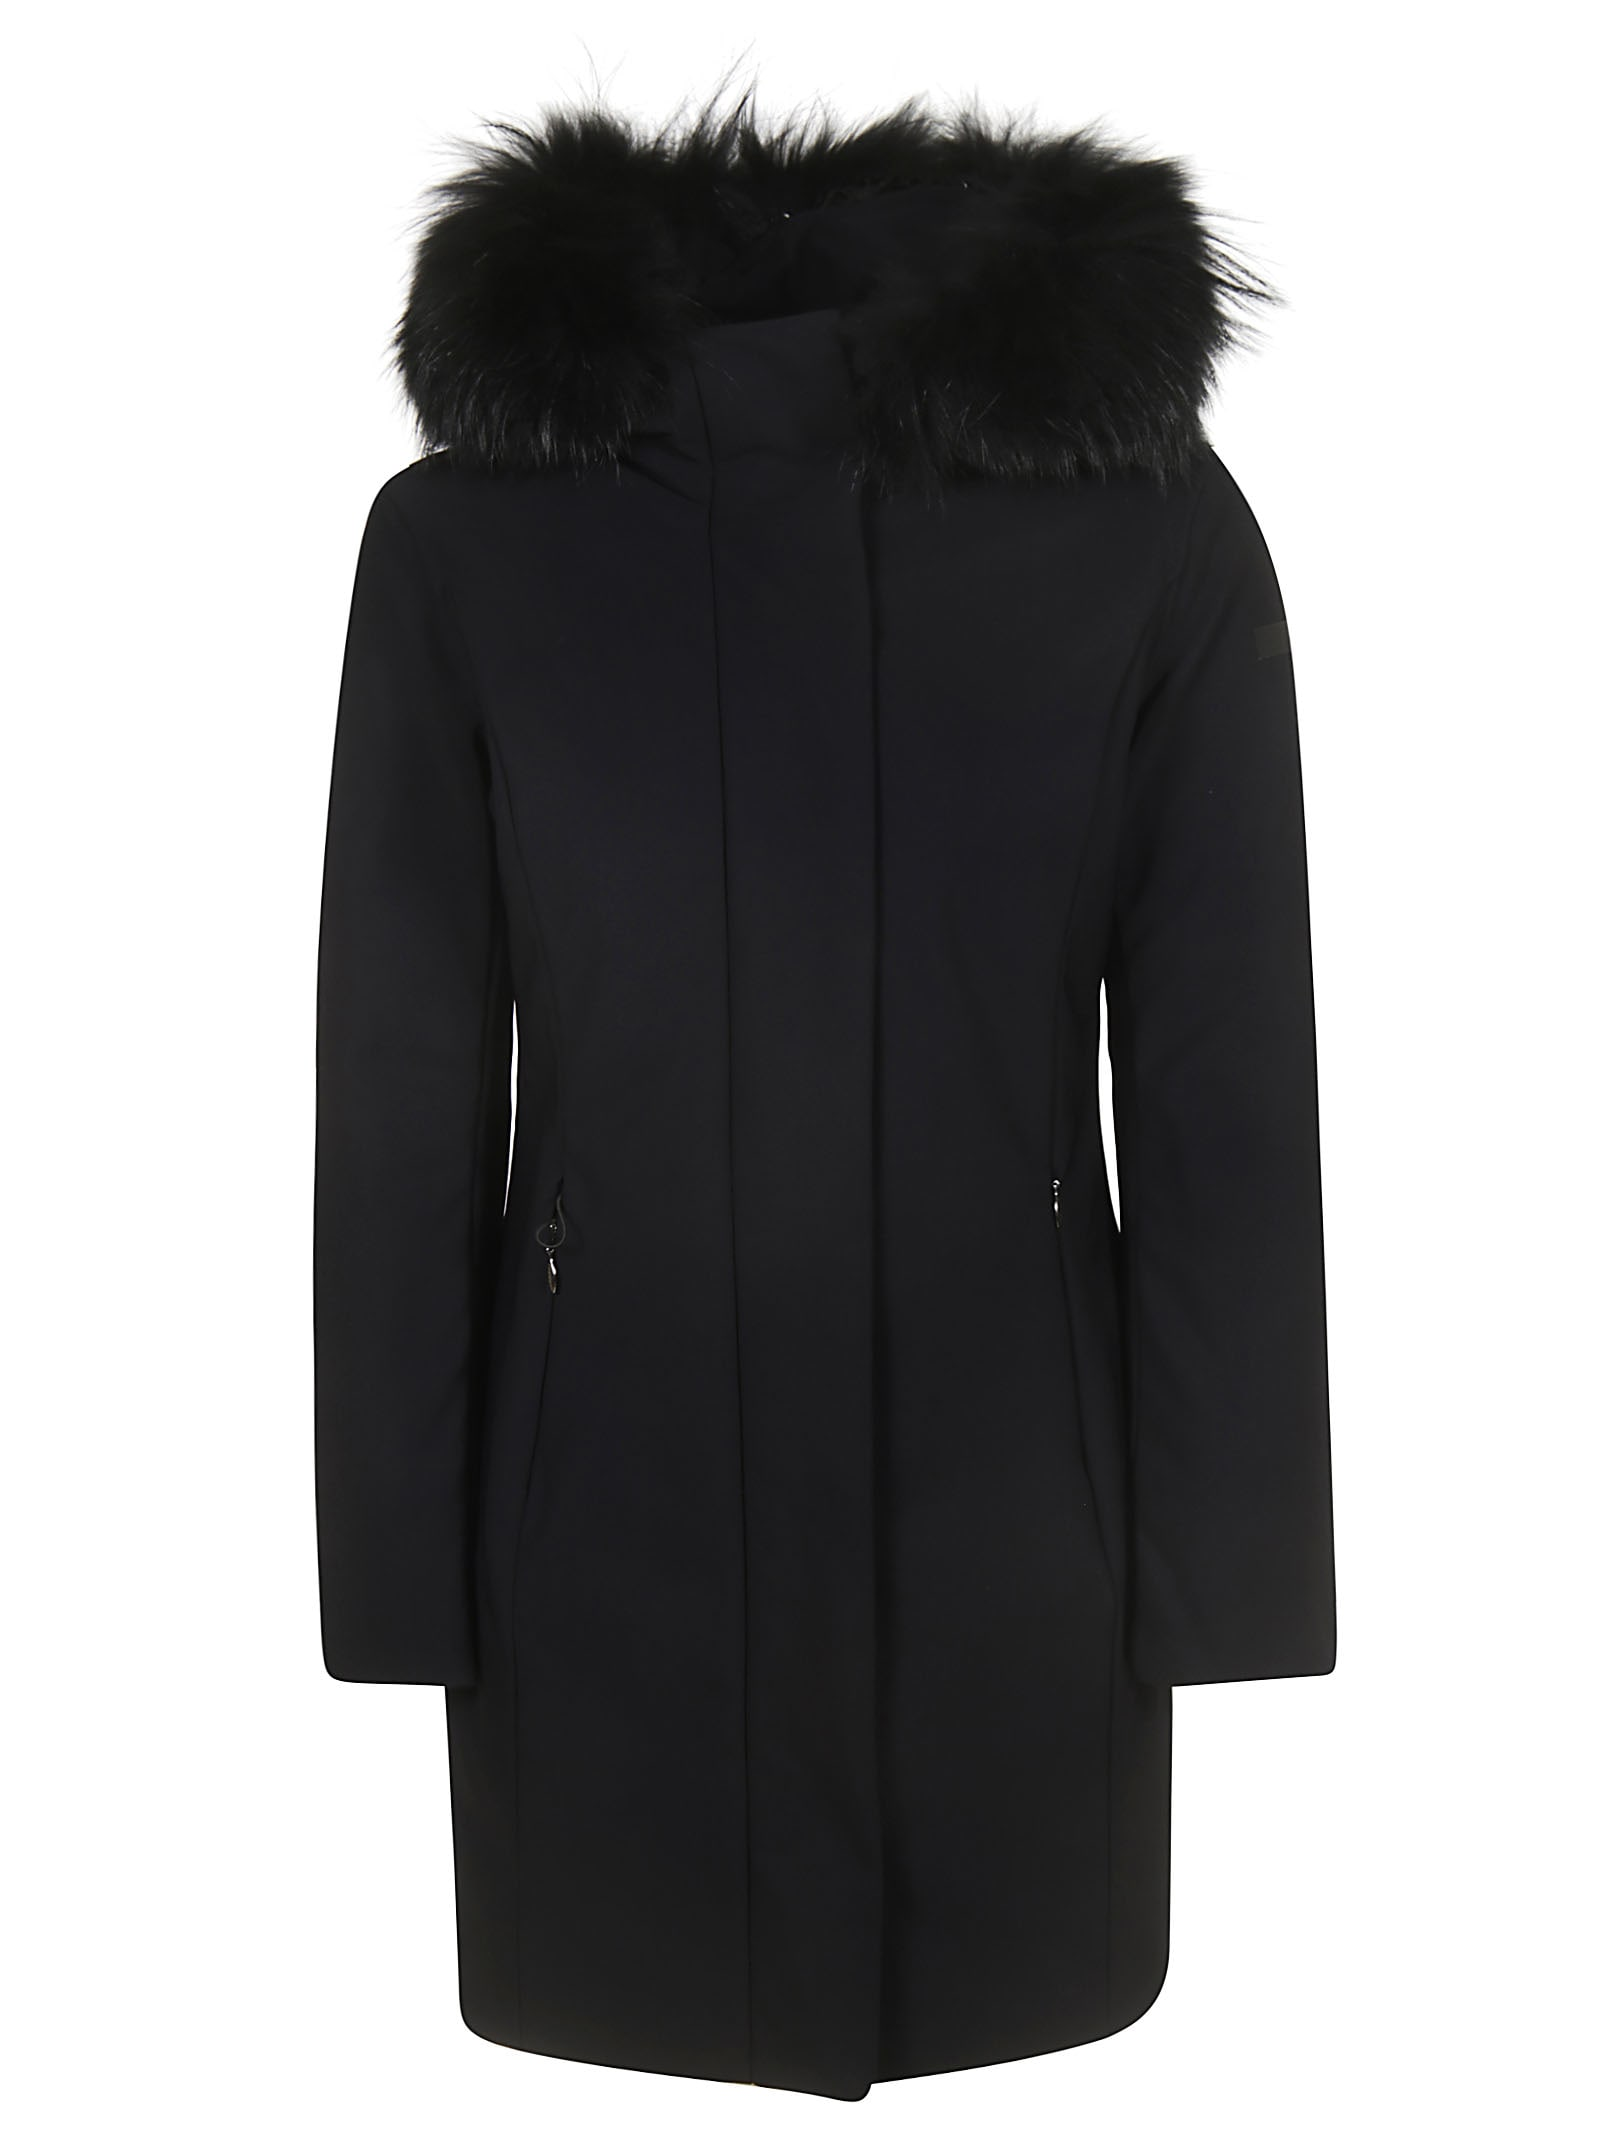 RRD - Roberto Ricci Design Classic Zipped Furry Hood Coat